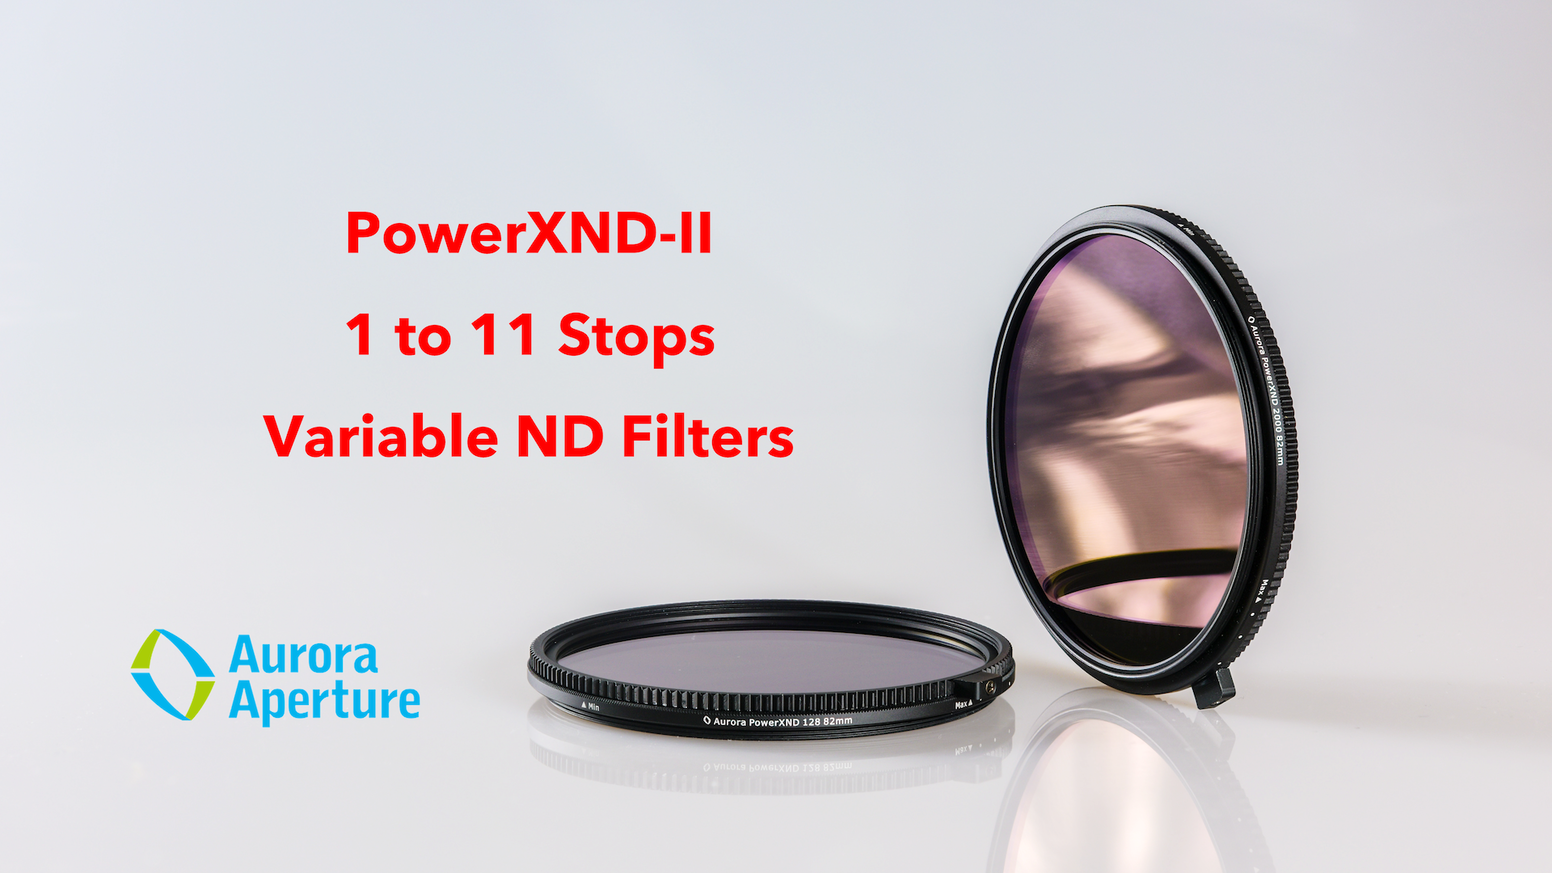 The World's best variable ND filters,  the Aurora PowerXND-II 128 covers 1 to 7 stops and PowerXND-II 2000 covers 5 up to 11 stops.